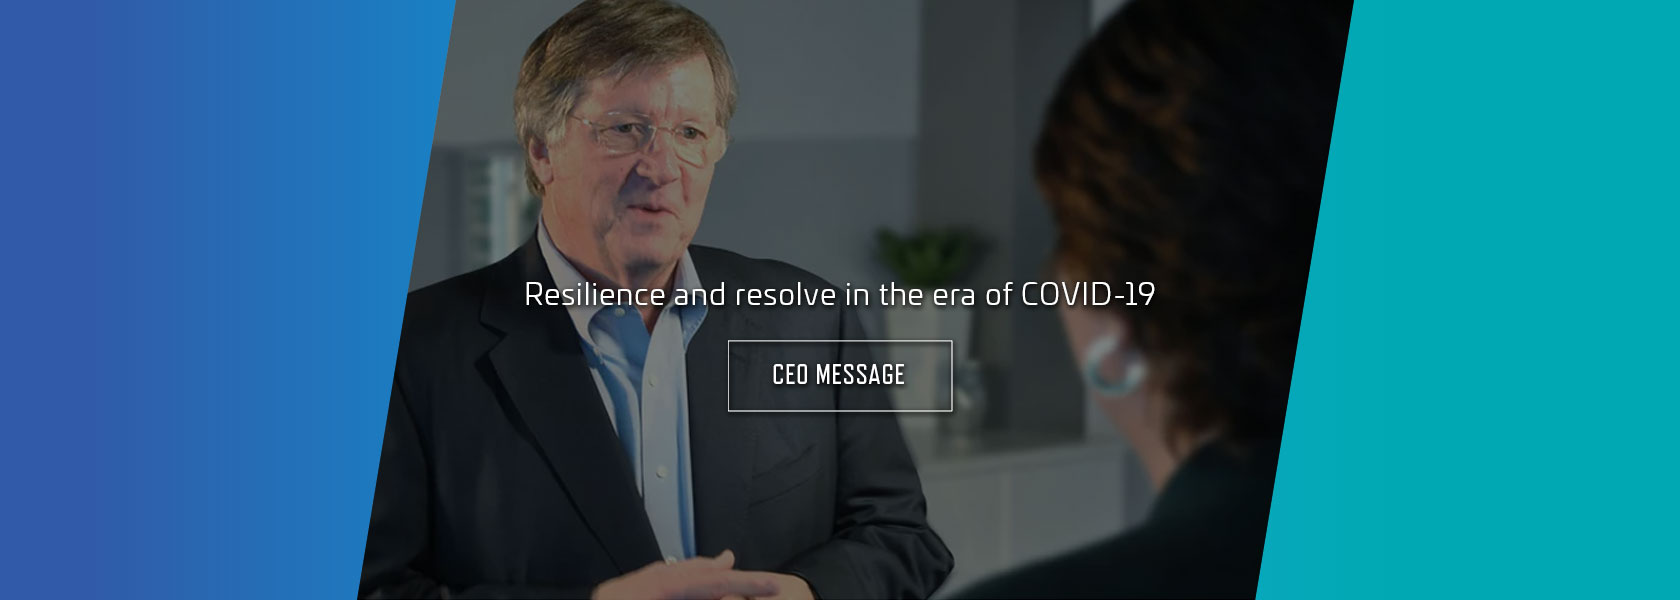 Resilience and resolve in the era of COVID-19